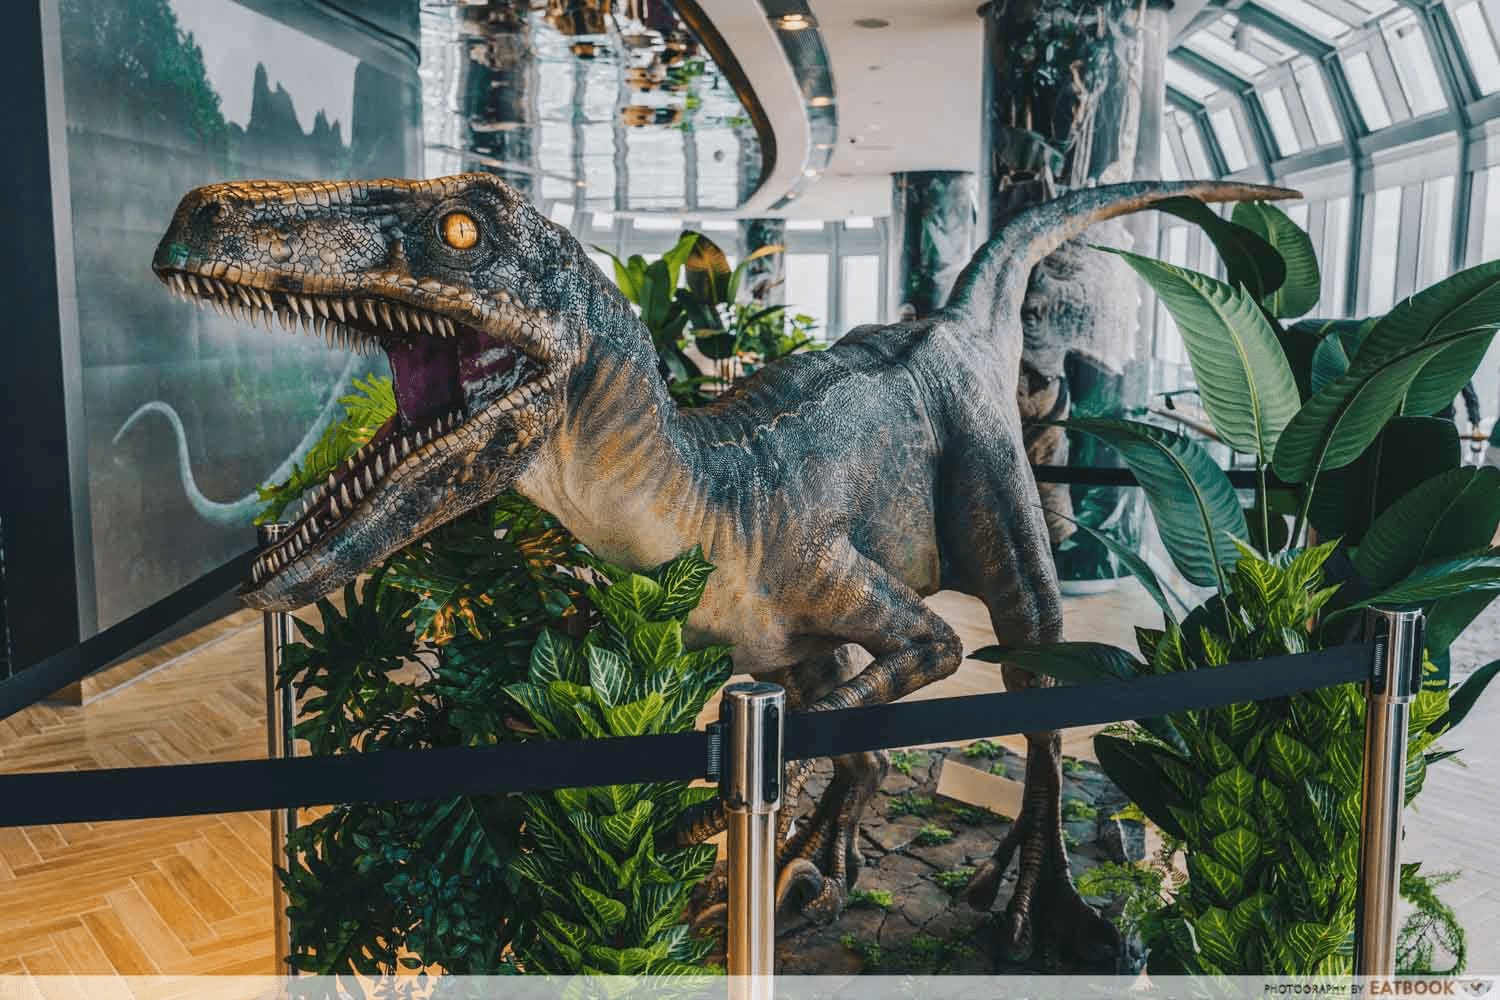 jurassic world cafe, things to do december 2020